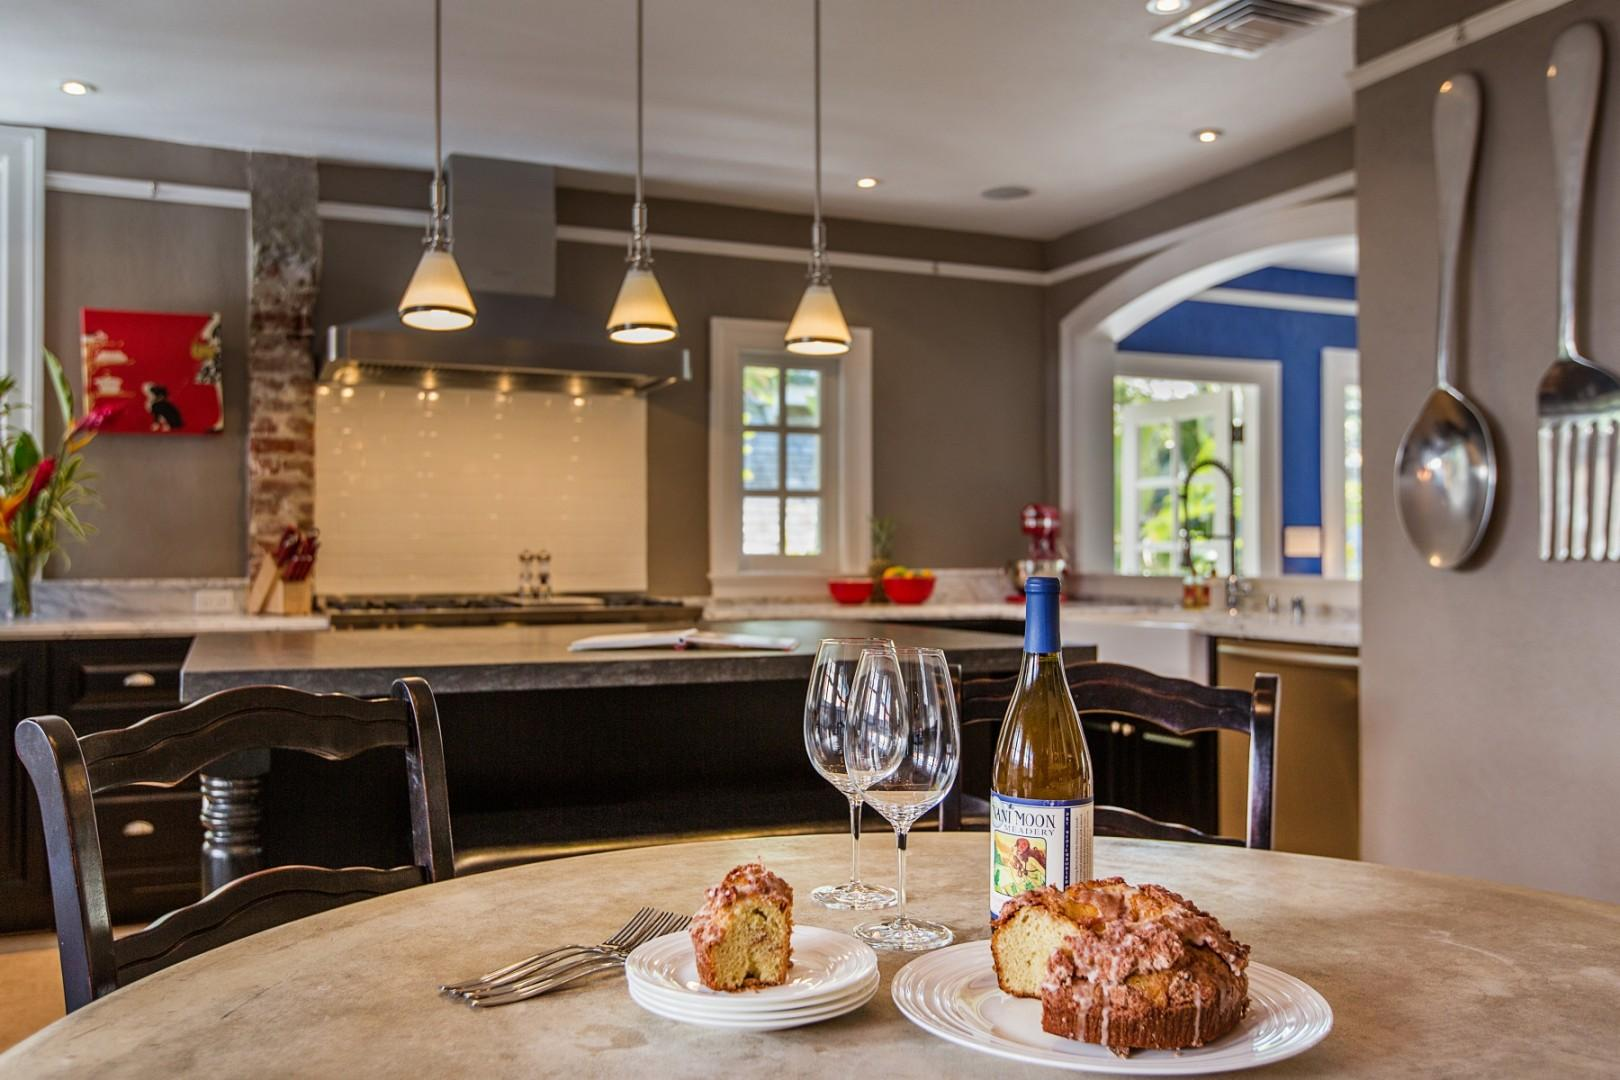 Dining room and kitchen. This chef's dream kitchen includes top-of-the-line appliances and extra amenities like a KitchenAid mixer.